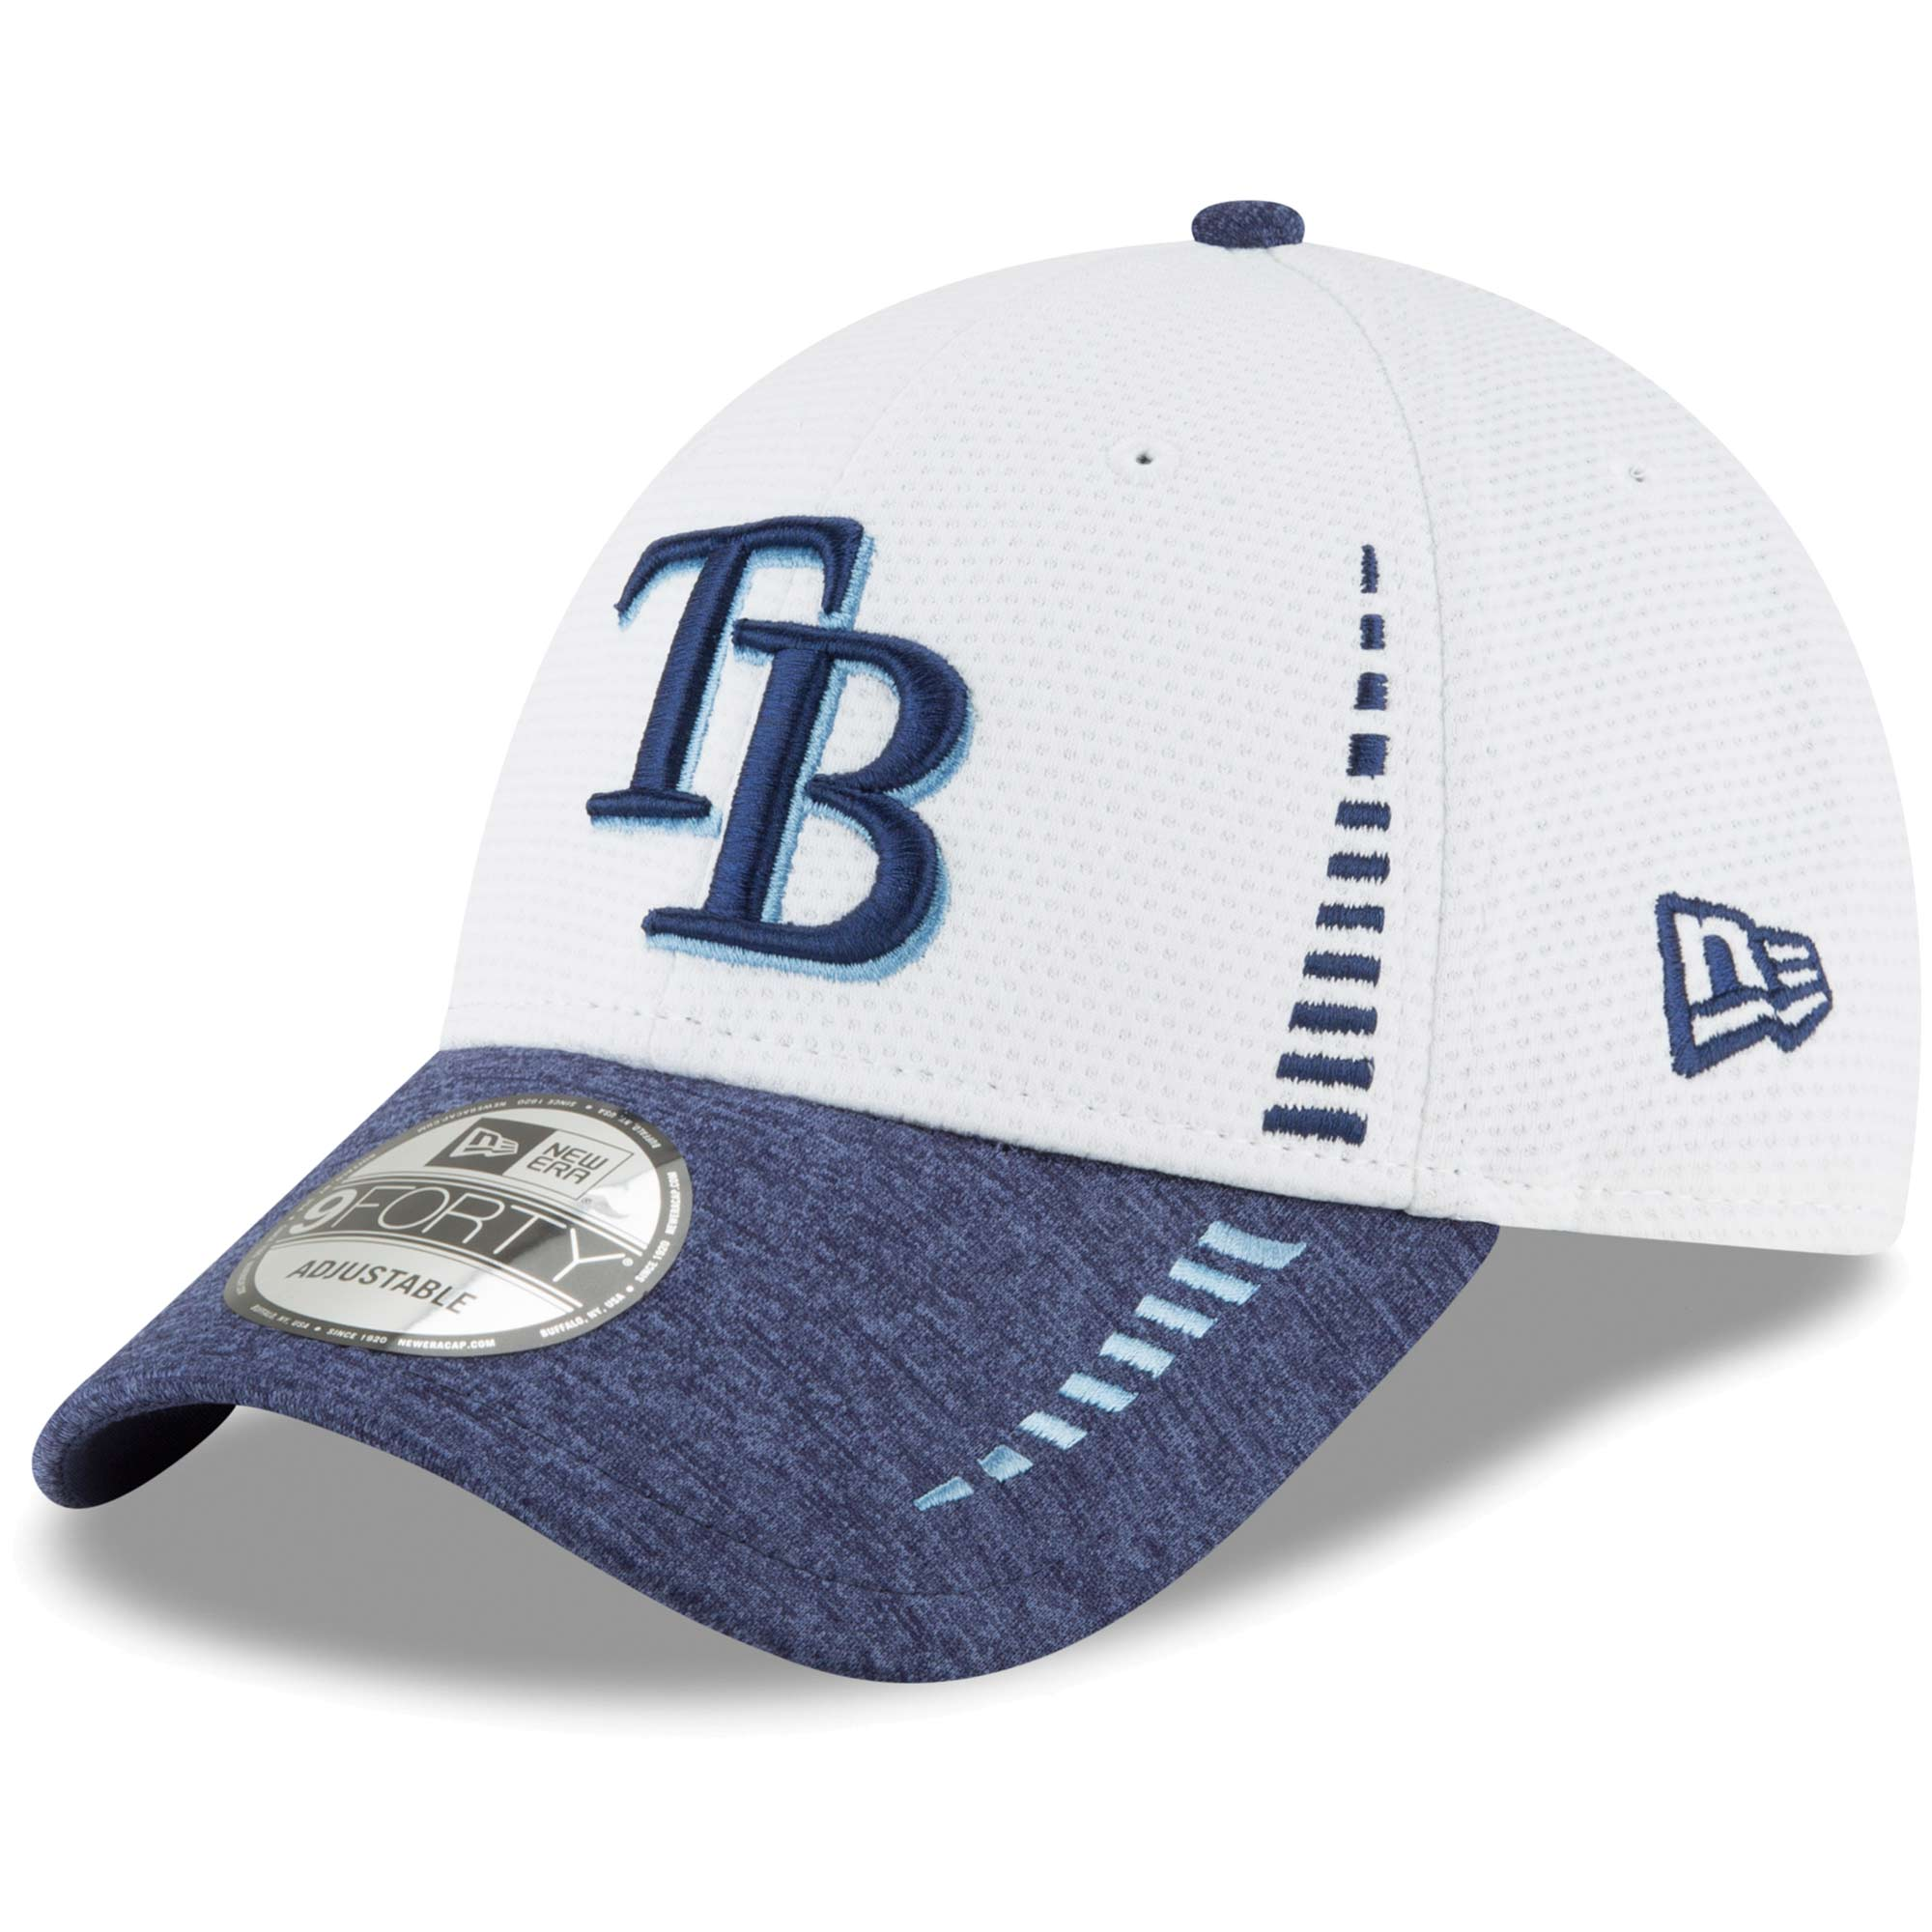 official photos 4a15b d199d ... reduced tampa bay rays new era speed tech 9forty adjustable hat white  osfa 07652 030dc